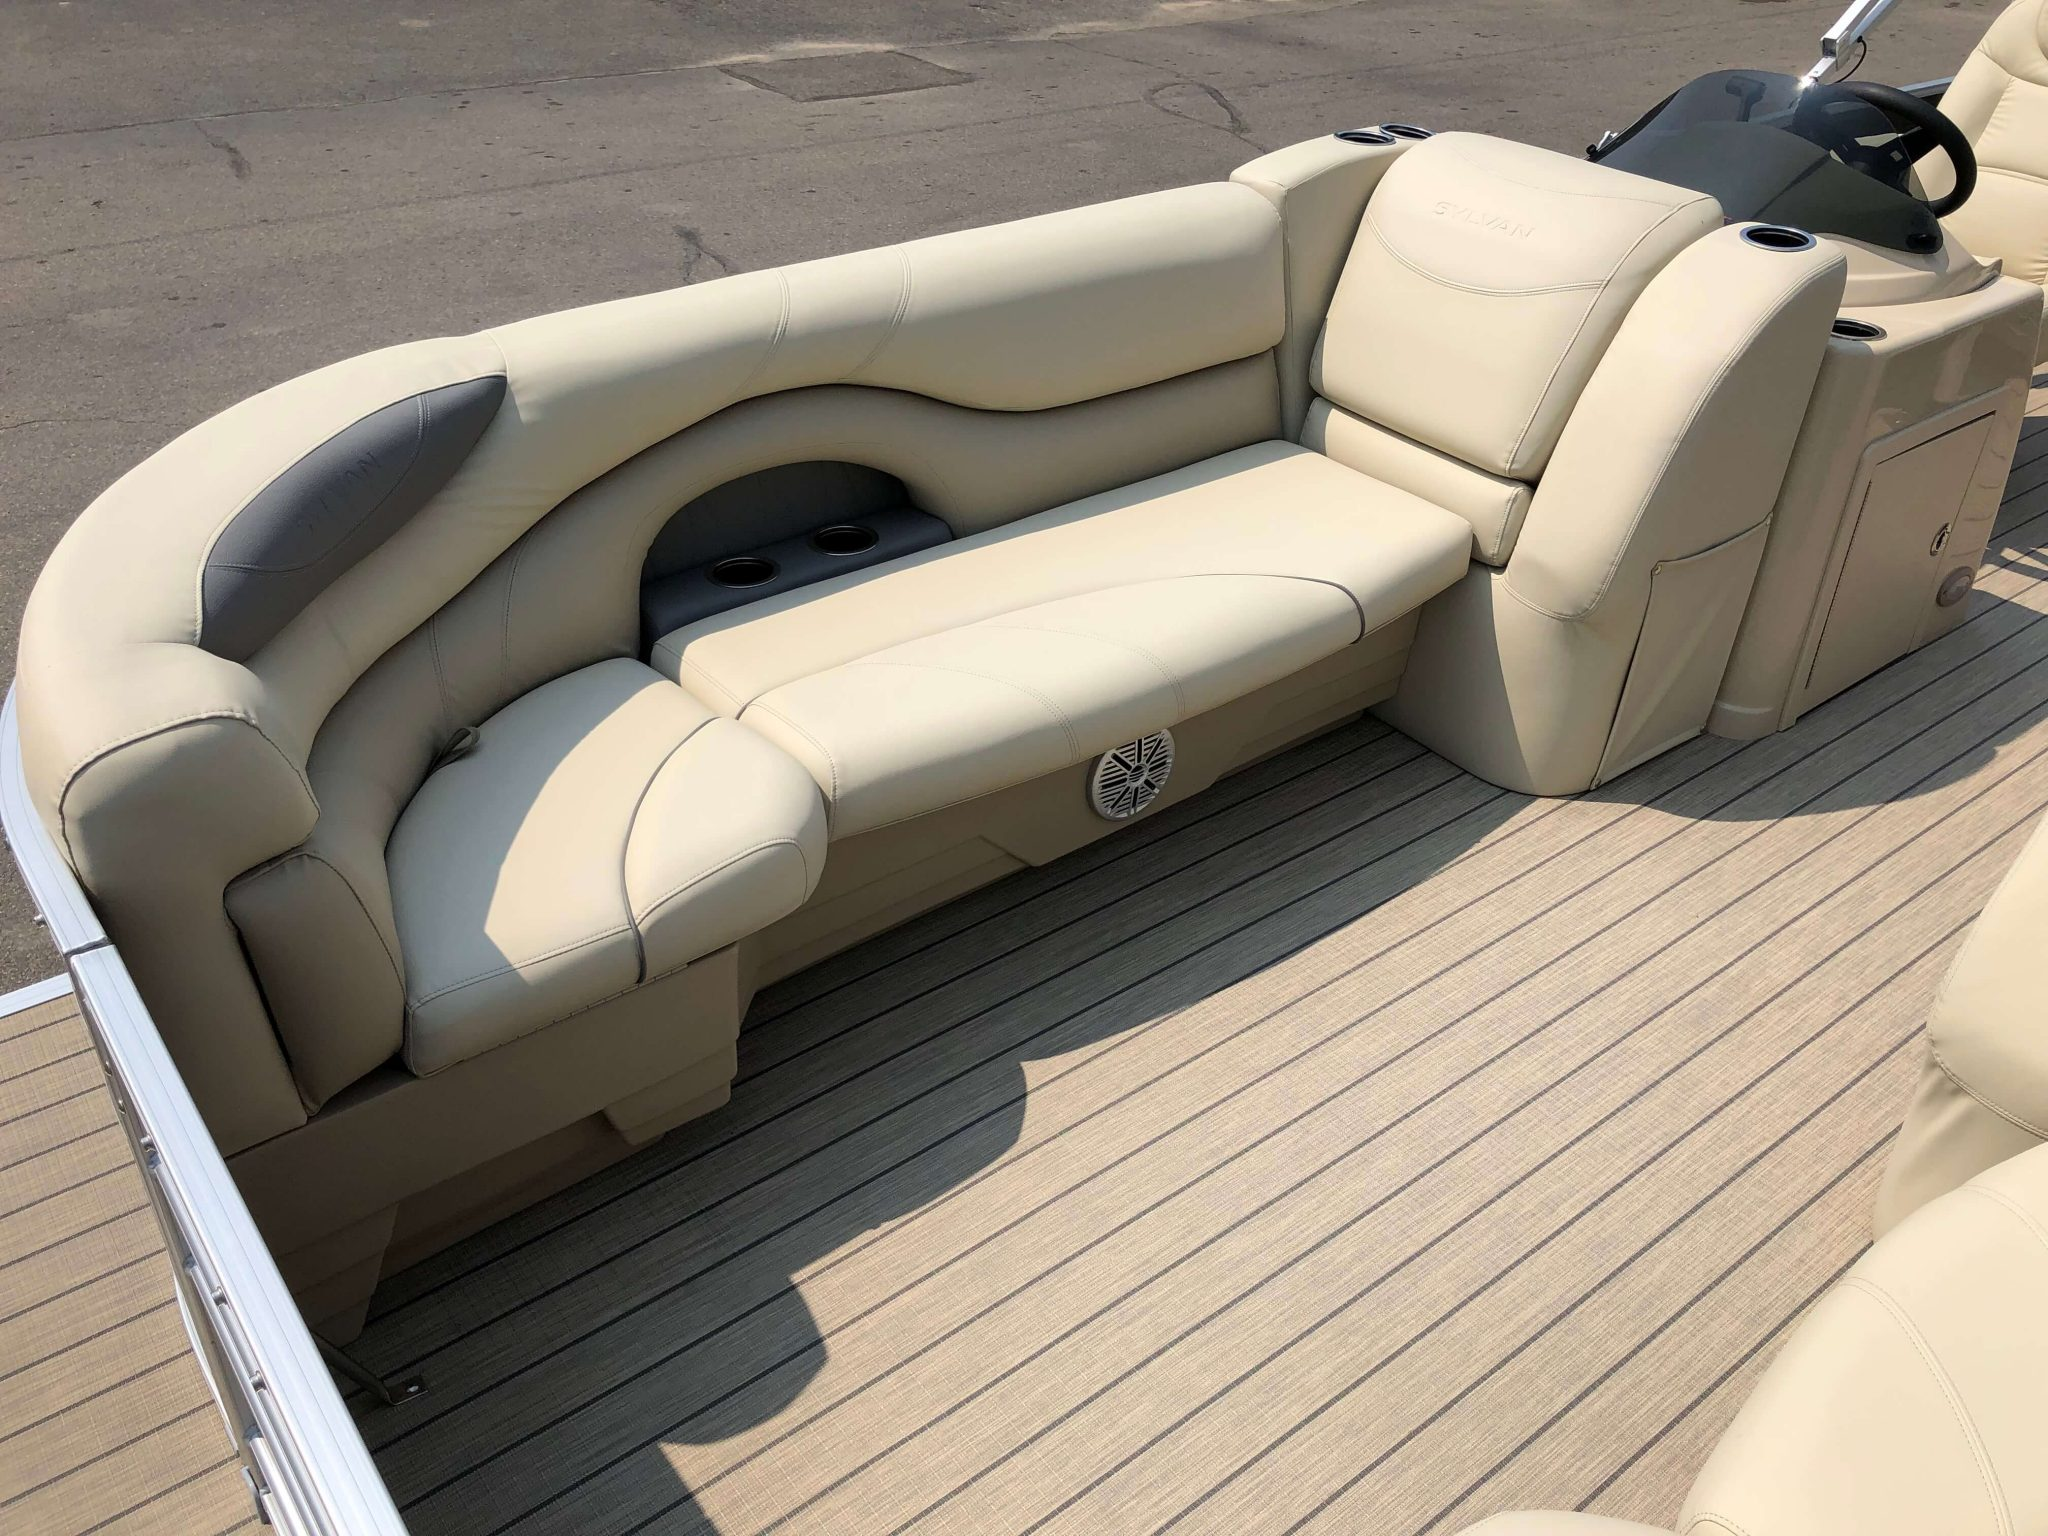 2019 Sylvan 8522 Cruise Carbon Pontoon Boat Seating 1